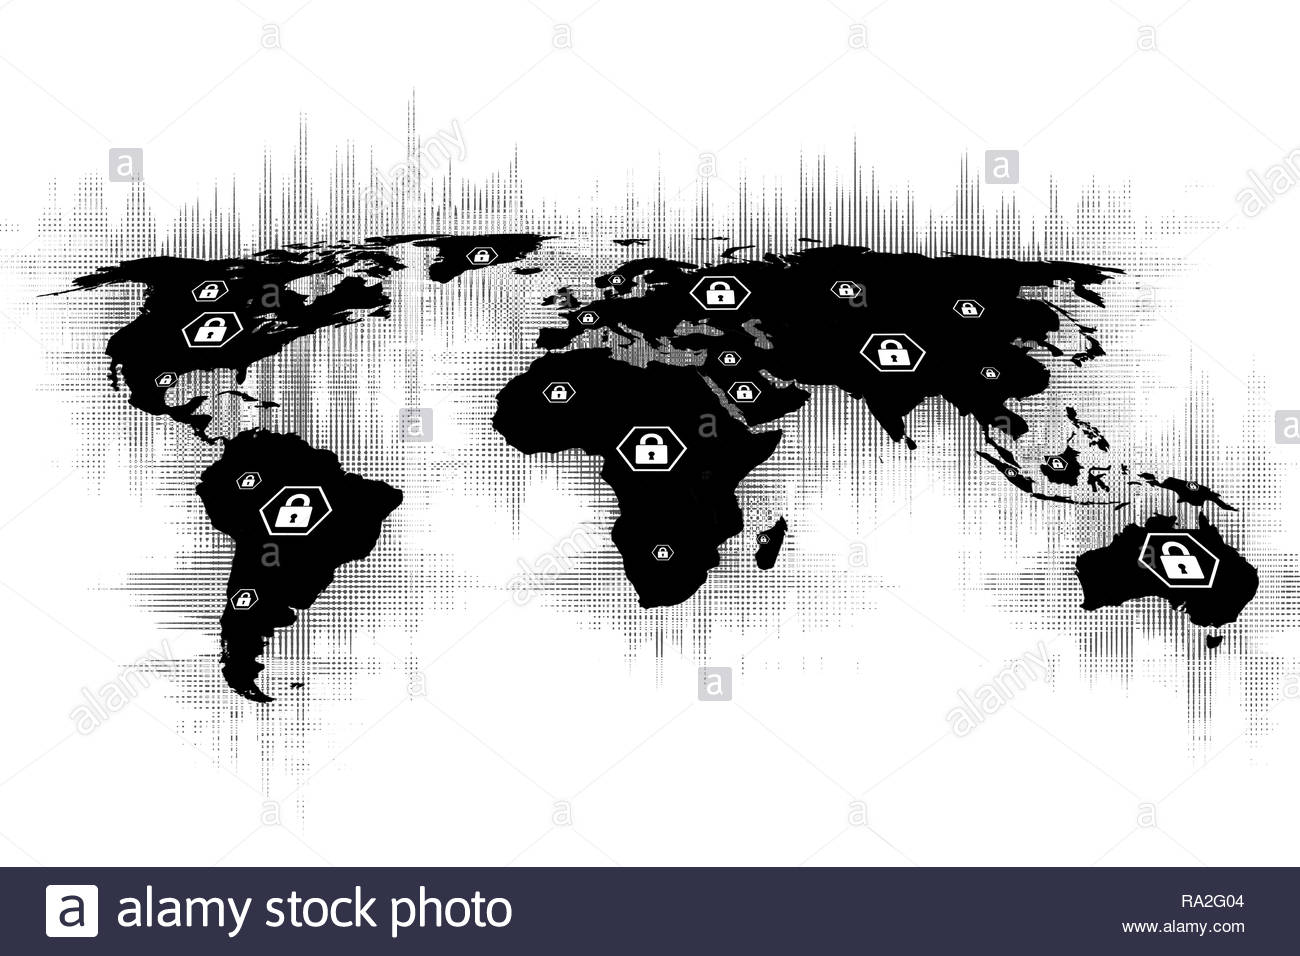 Image of a world map with futuristic texture and icons of padlocks on the continents. World map with padlock vectors, secure internet or virtual secur - Stock Image